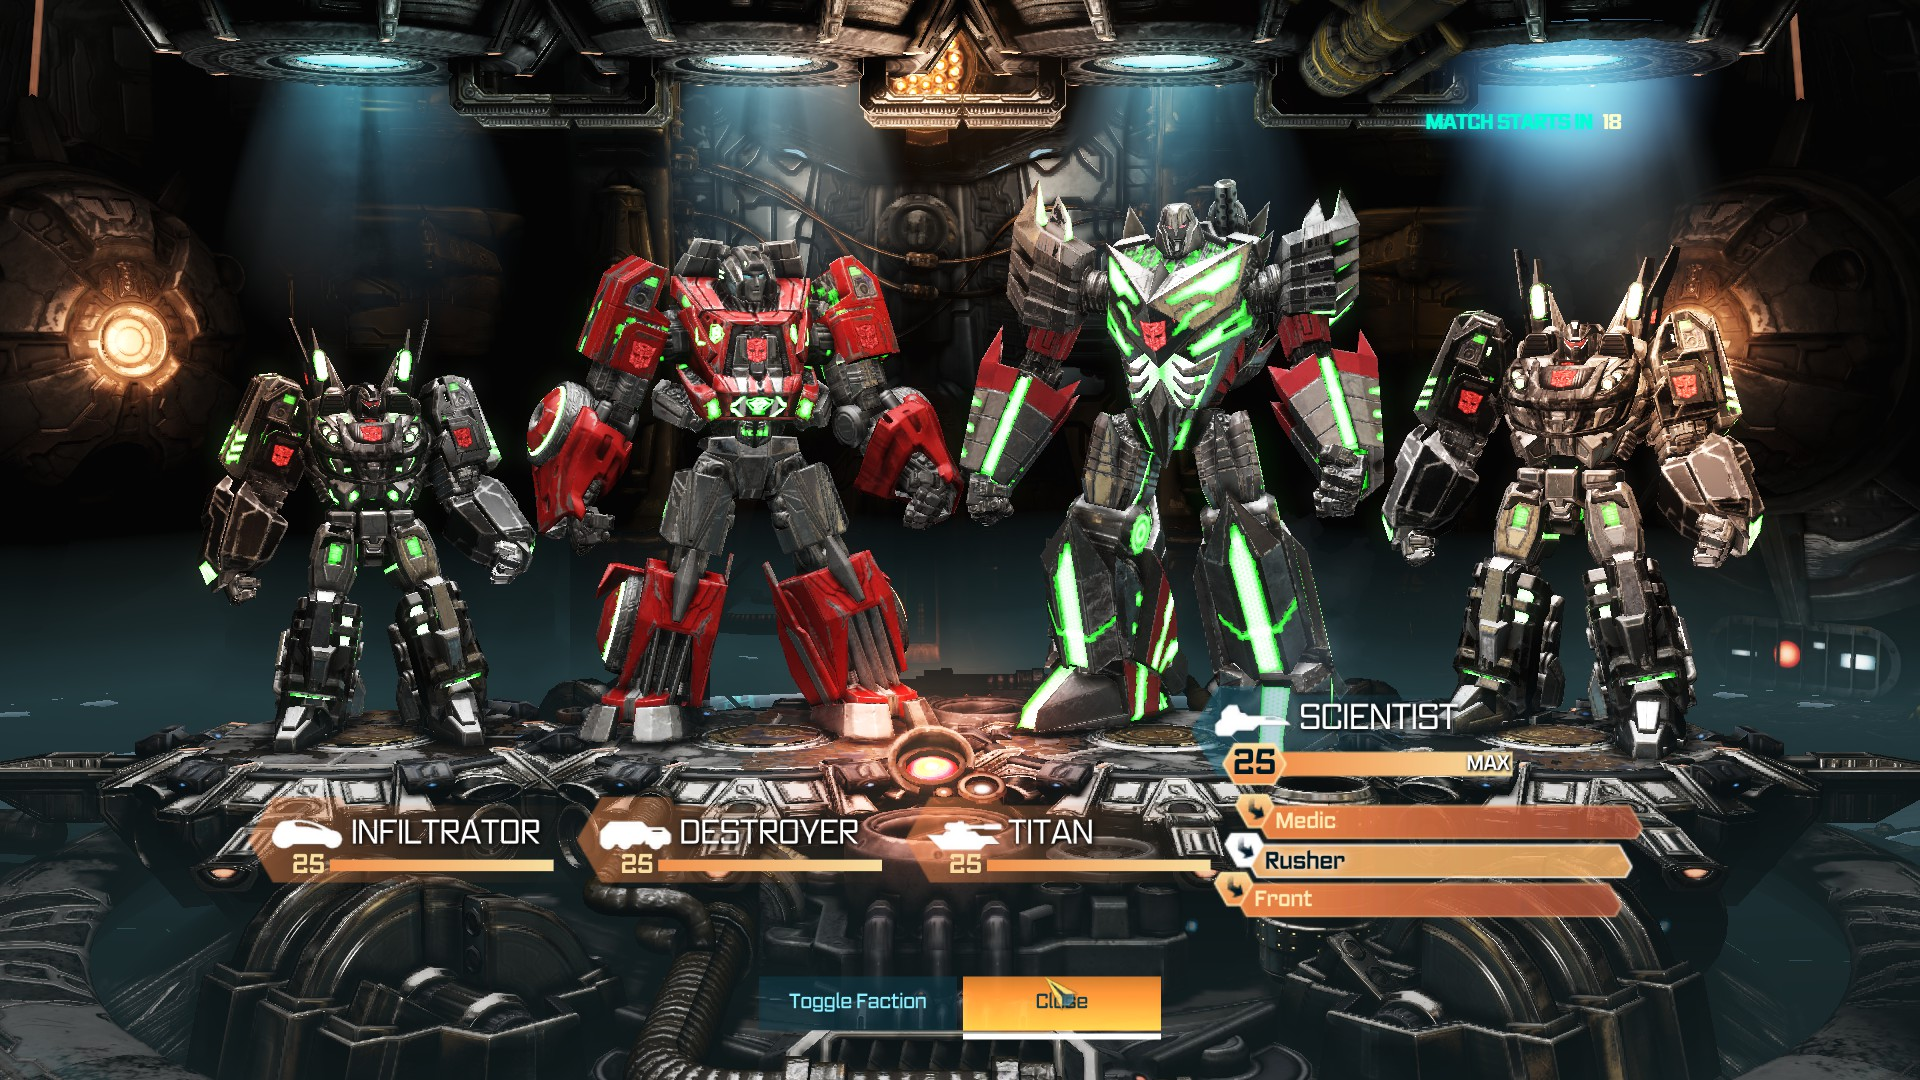 image 1 transformers fall of cybertron cosmetic mod for